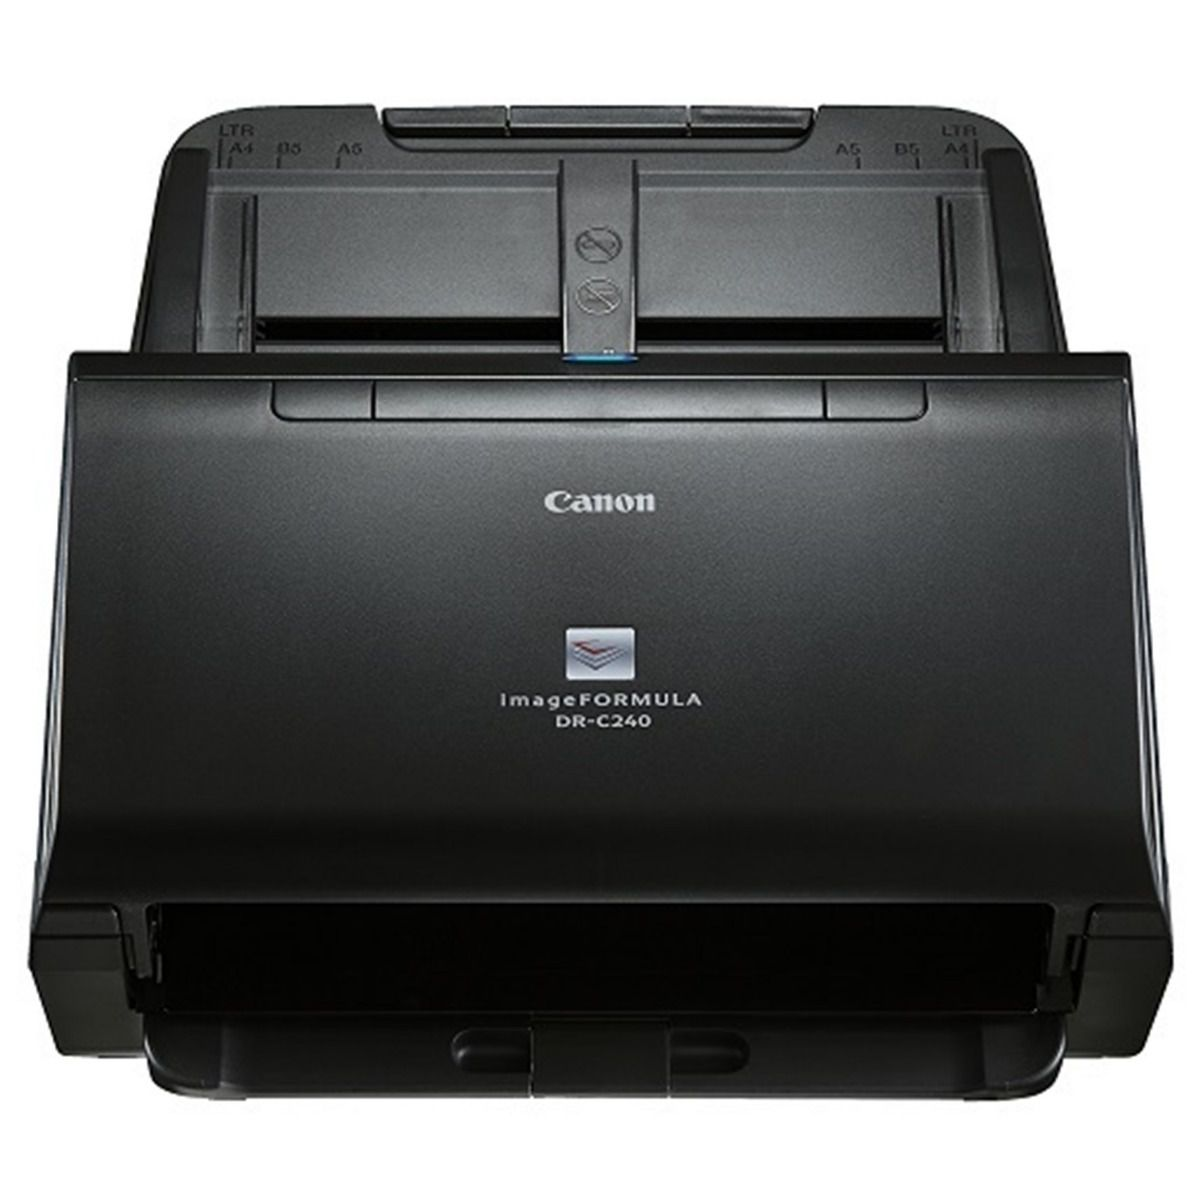 Scanner Canon - DR-C240 - 0651C014AA